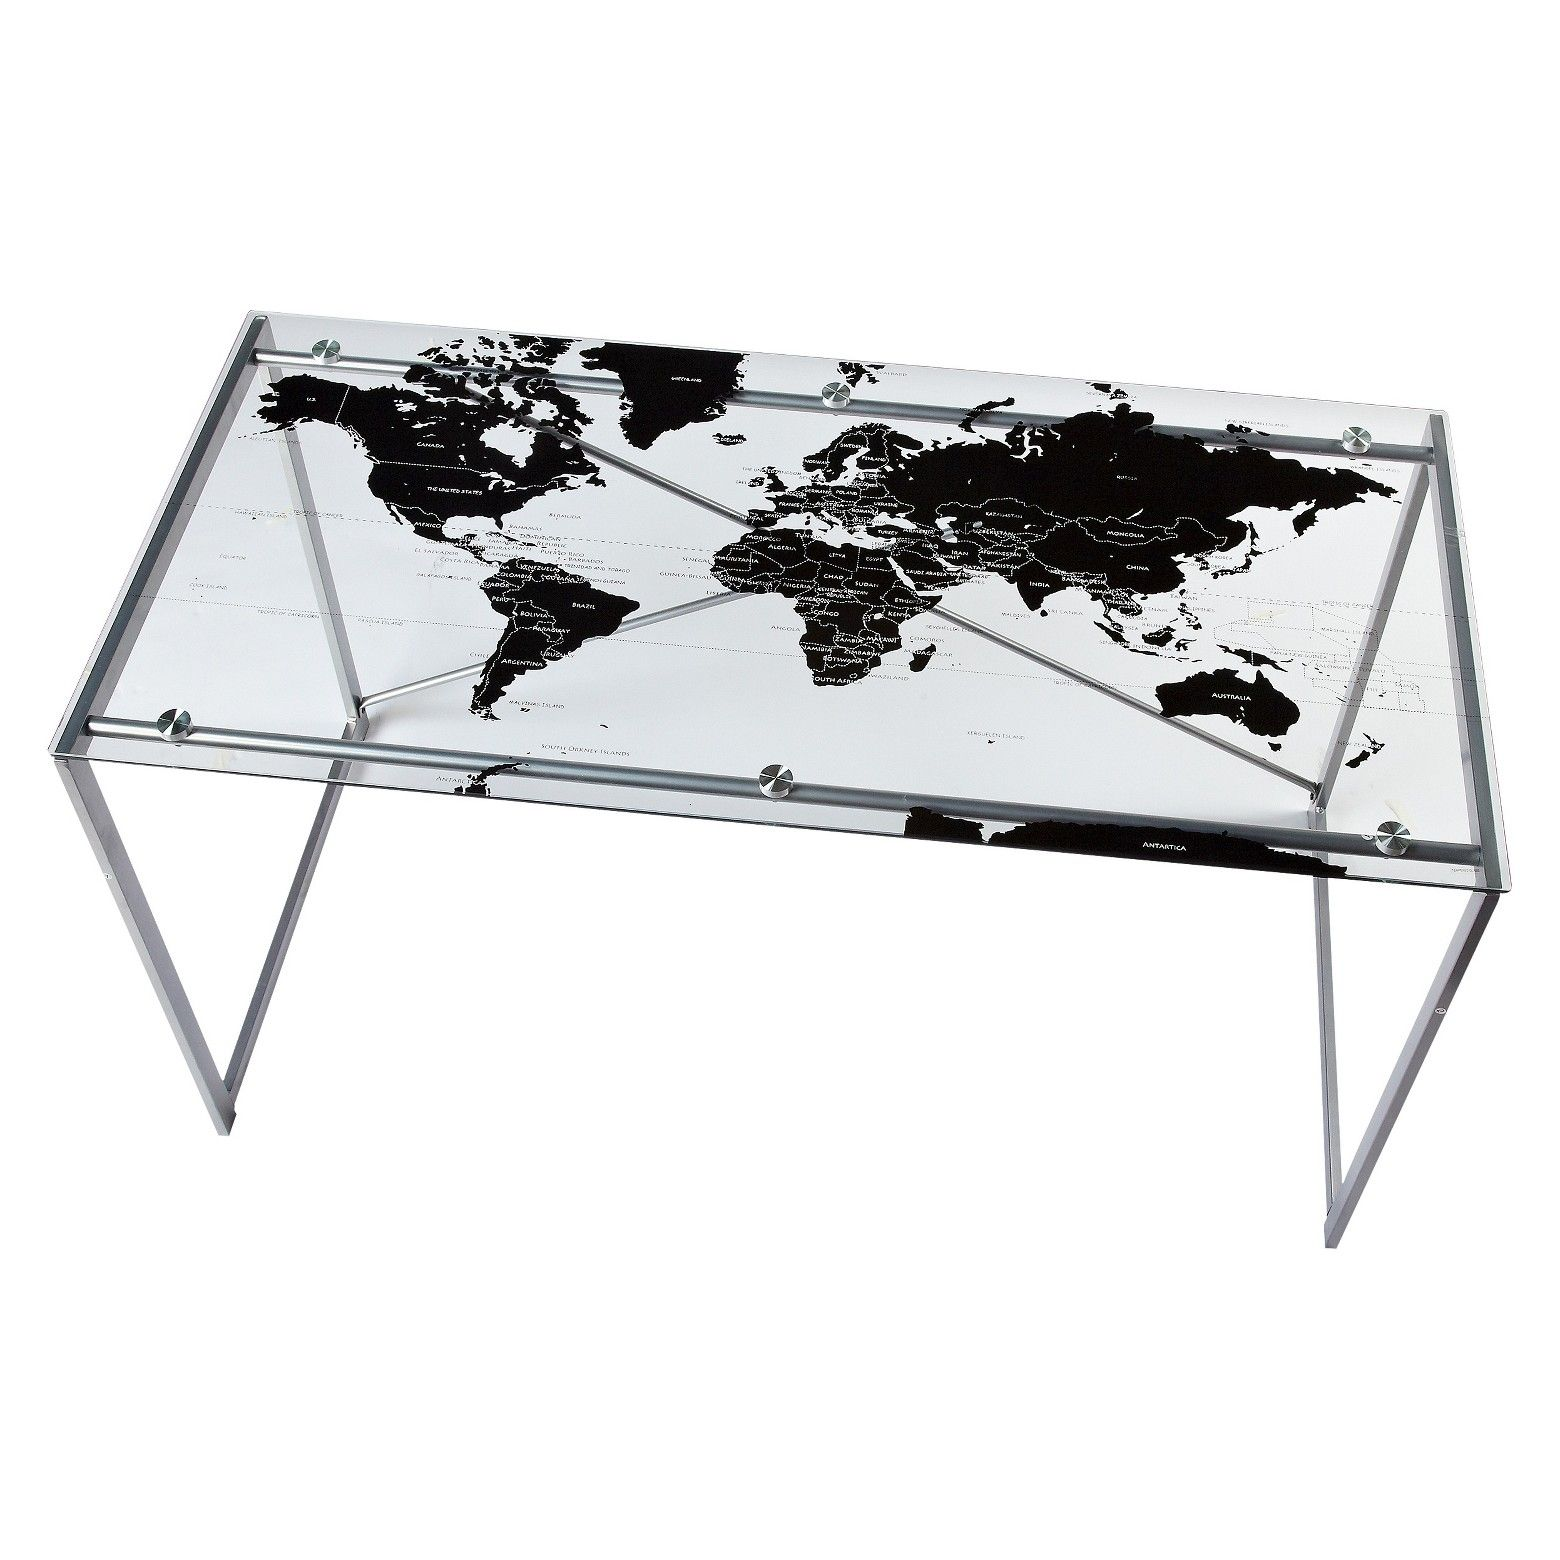 Tms world map desk desks glass top desk and decor styles featuring a world map design this contemporary glass top desk is both fun and functional gumiabroncs Images